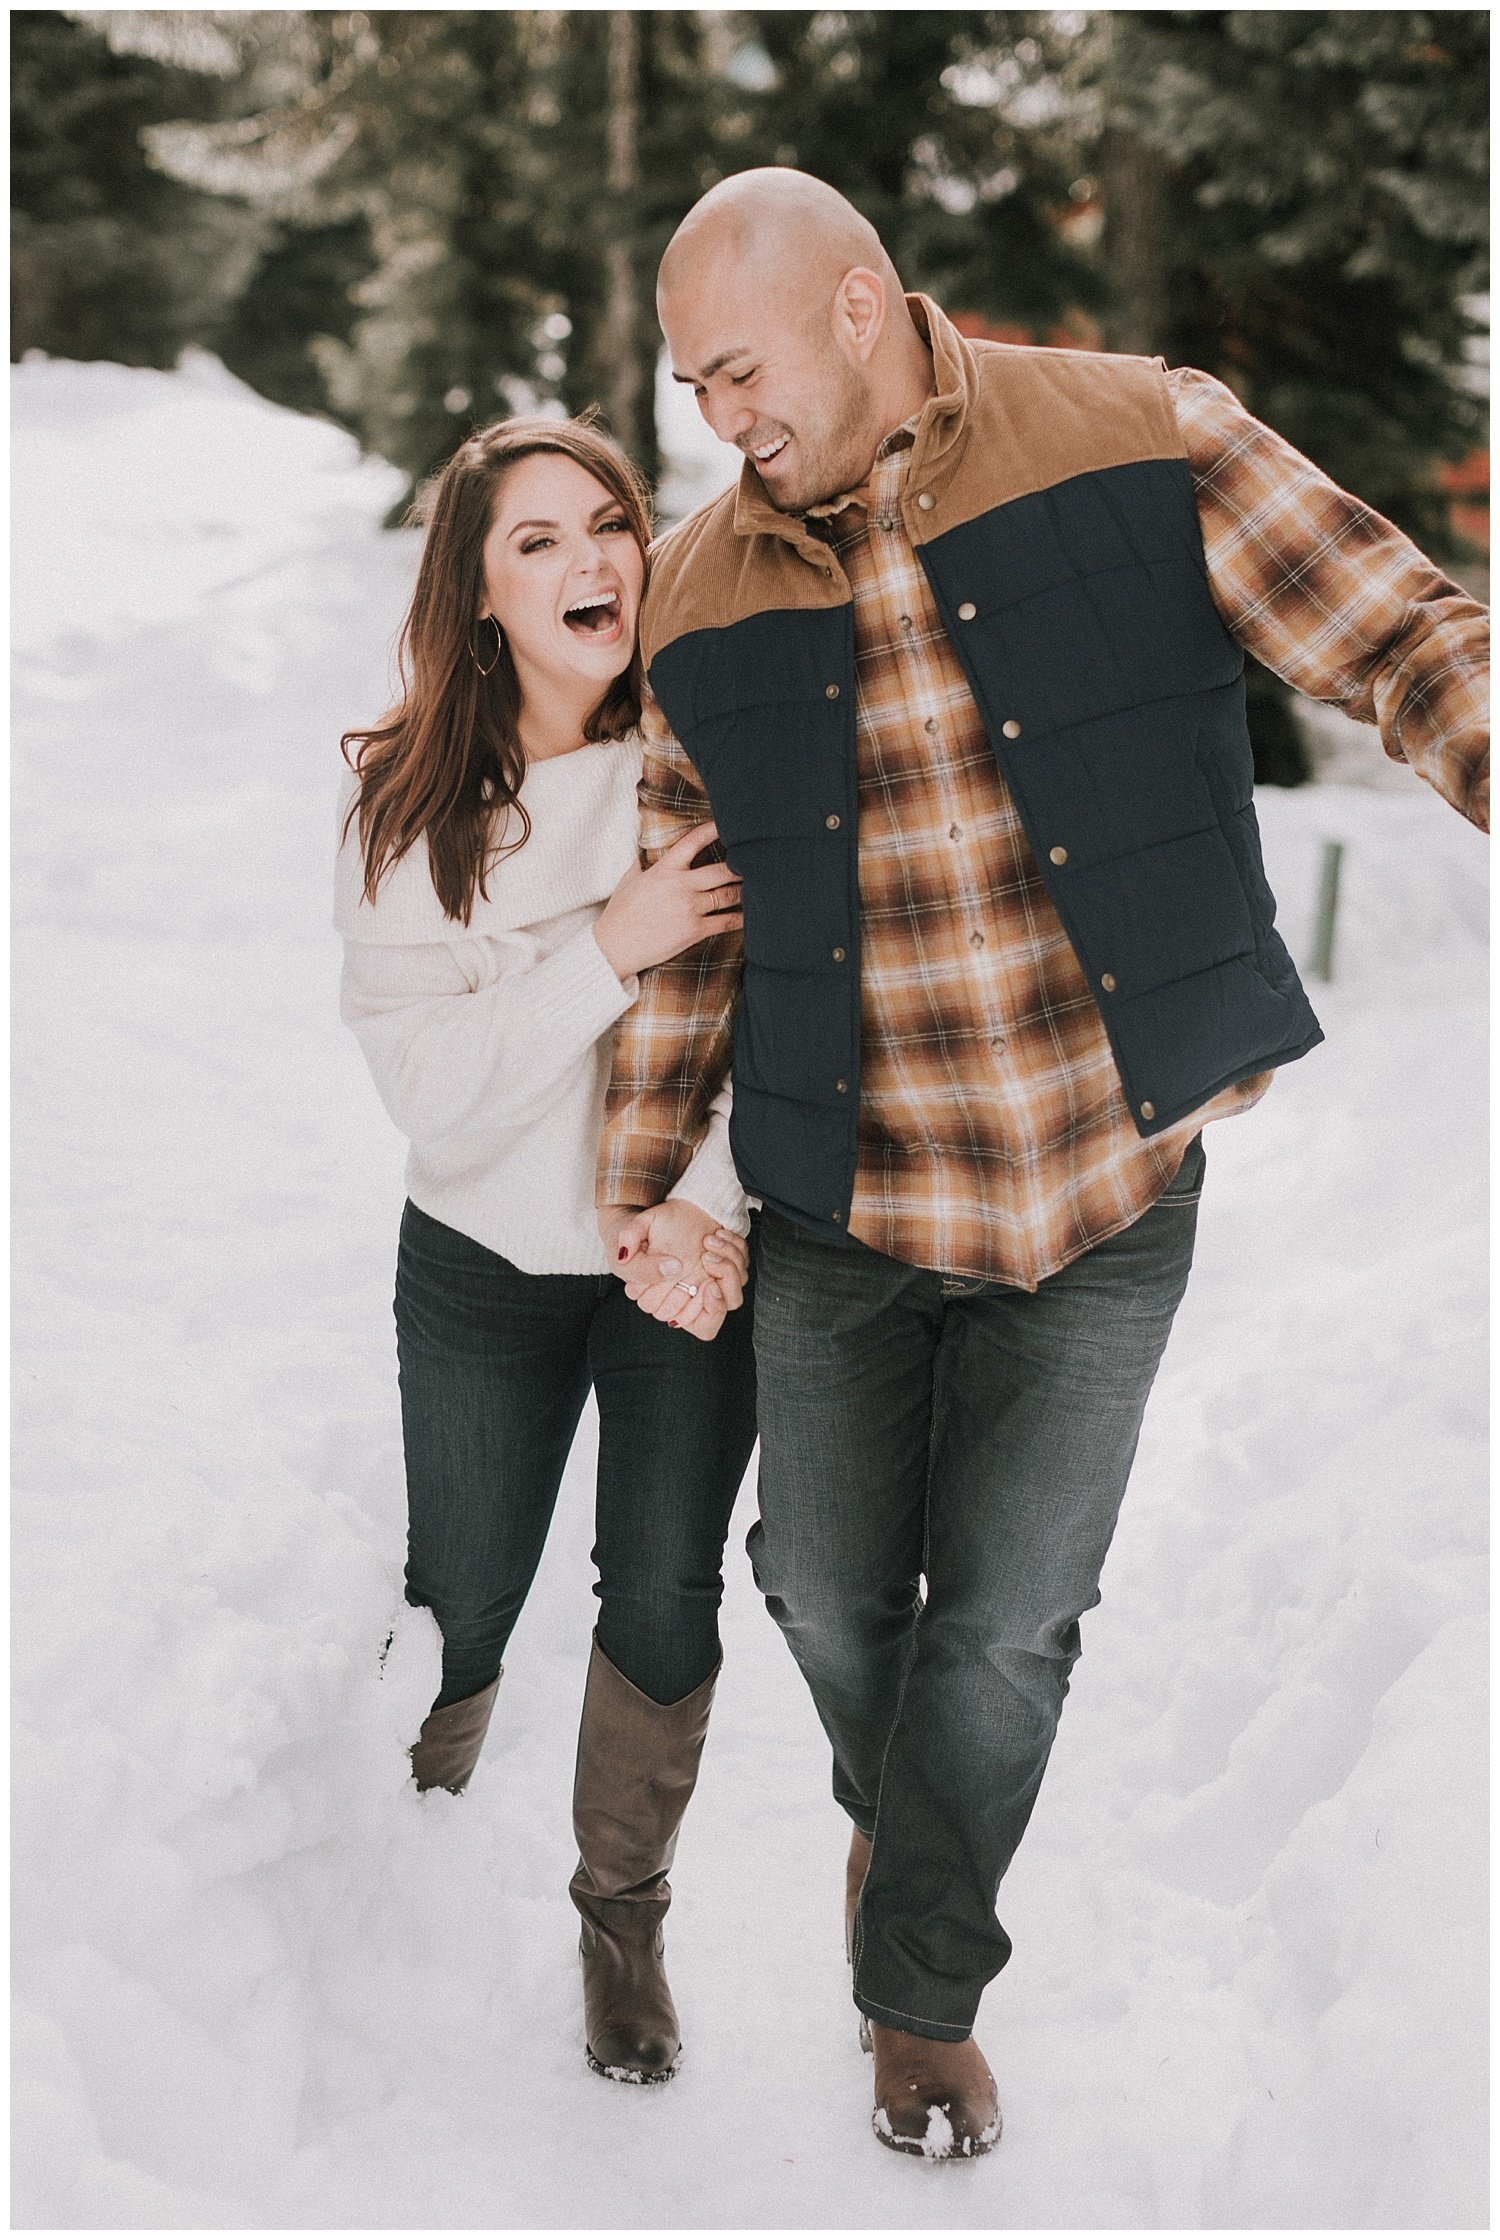 snowy-winter-engagement-photos-luma-weddings_0007